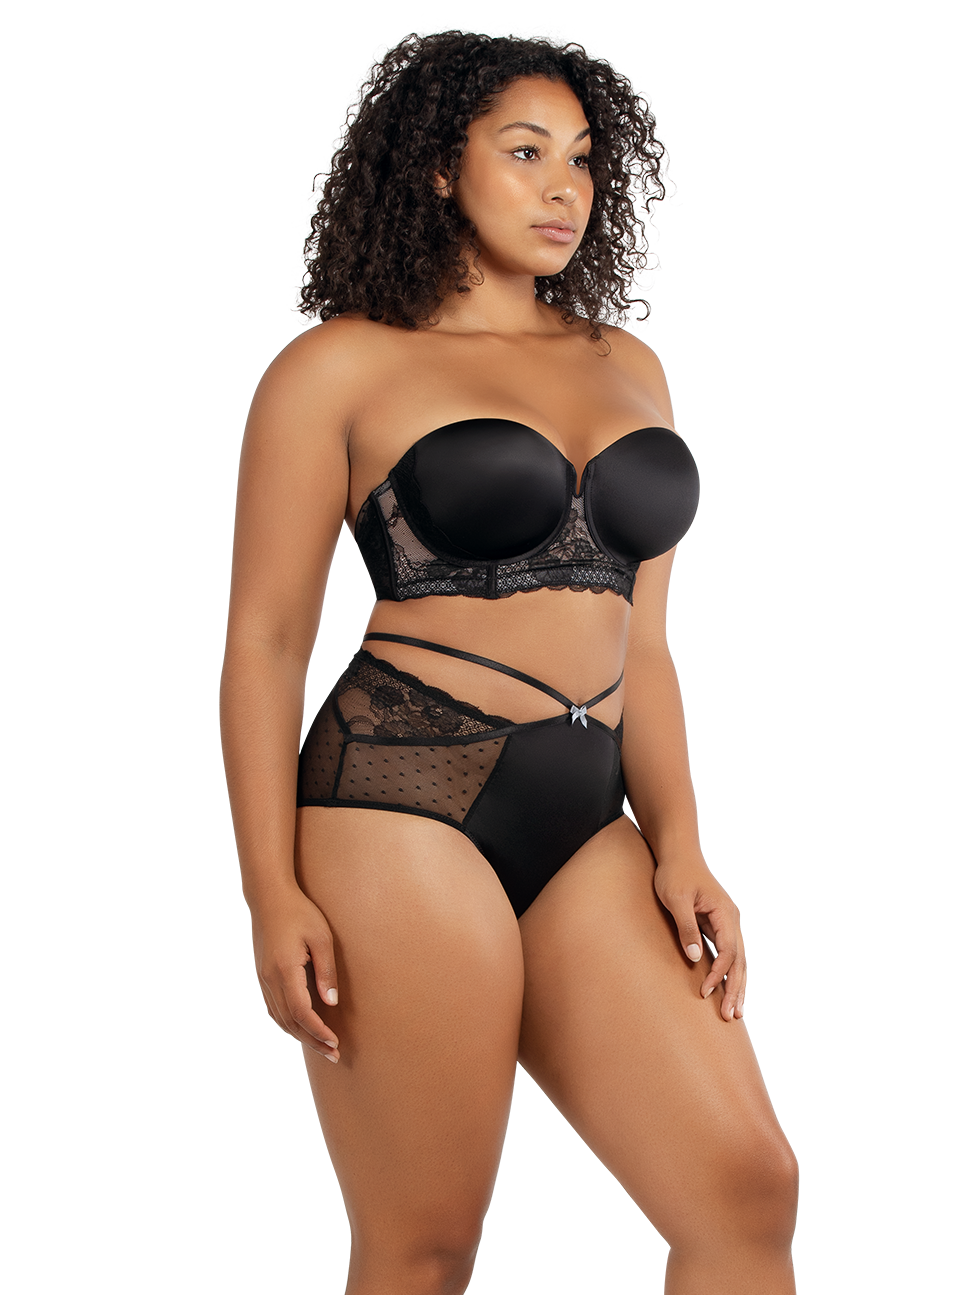 PARFAIT Amber StraplessBraA16812 HighwaistedBriefA1685 Black Side - Amber Highwaisted Brief Black A1685